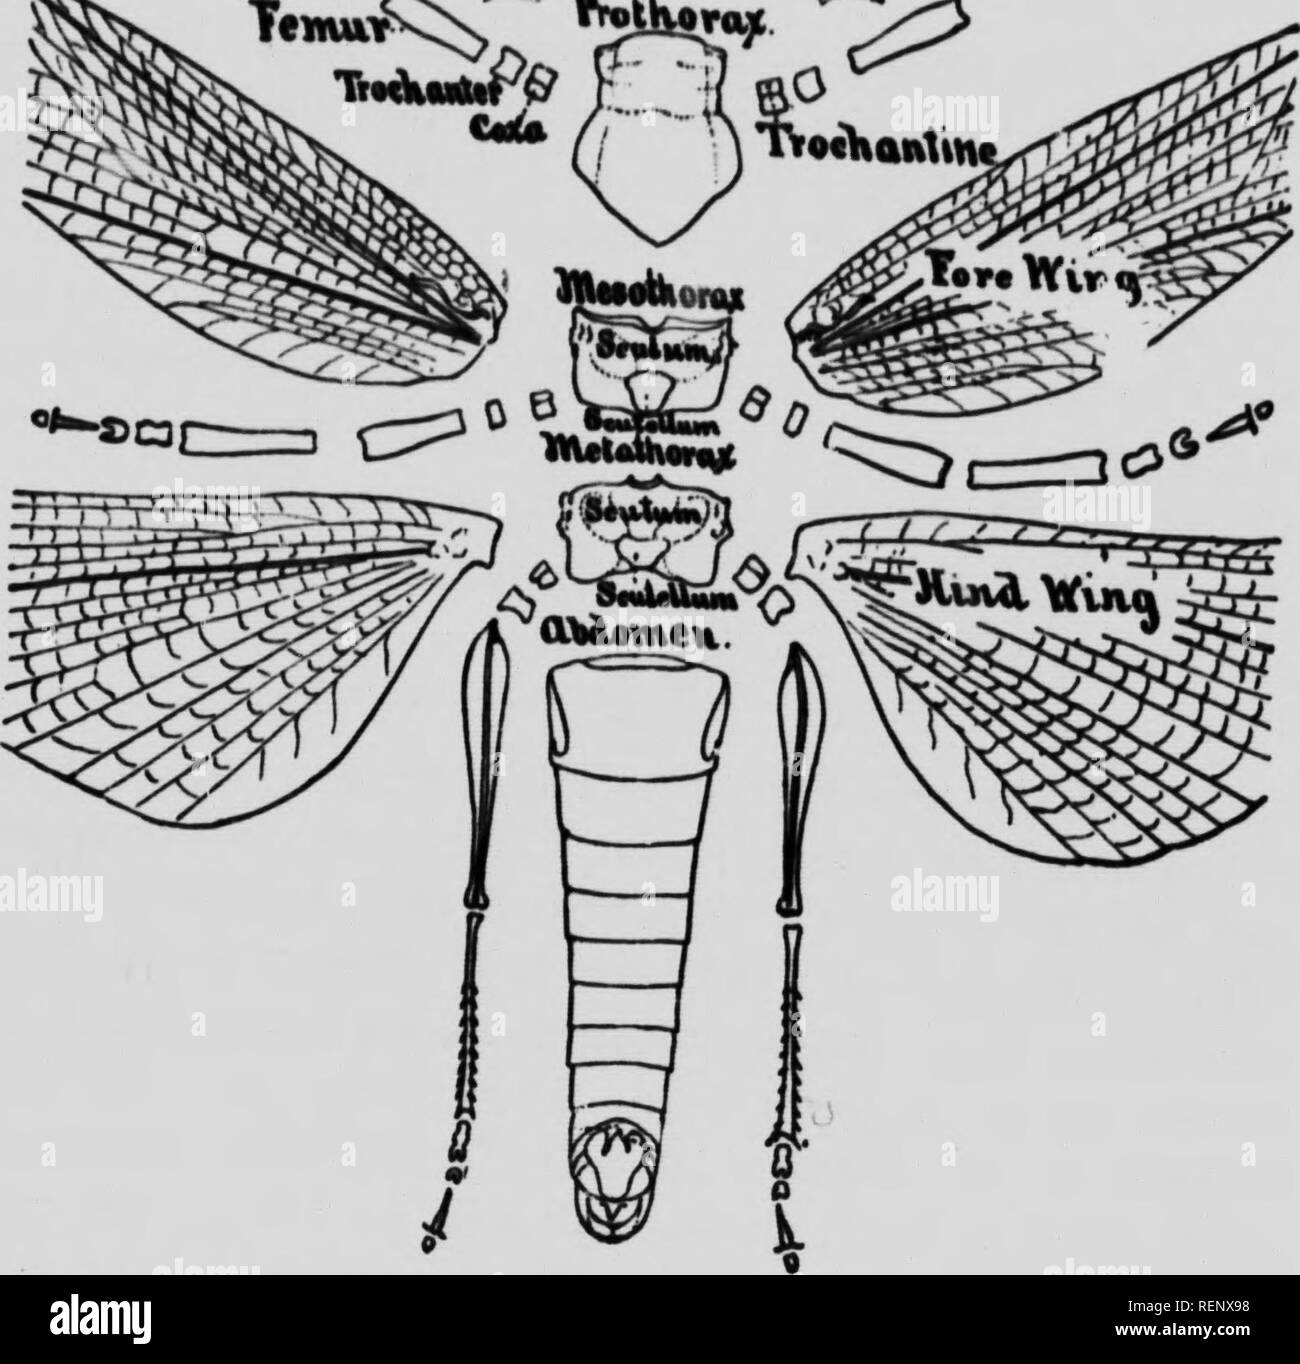 """. Zoölogy [microform] : descriptive and practical. Zoology; Zoologie. QmUiuuN. FIG. a. EXTFRNAI FEATURF^ OP A GRASSHOPPER. DoRSAL ViEW. From Packard! ZoSlogy, '± Vl'^l ^'^^S.S^Vw-l""""'""""""""-.. Please note that these images are extracted from scanned page images that may have been digitally enhanced for readability - coloration and appearance of these illustrations may not perfectly resemble the original work.. Colton, Buel P. (Buel Preston), 1852-1906. Toronto : Copp, Clark - Stock Image"""